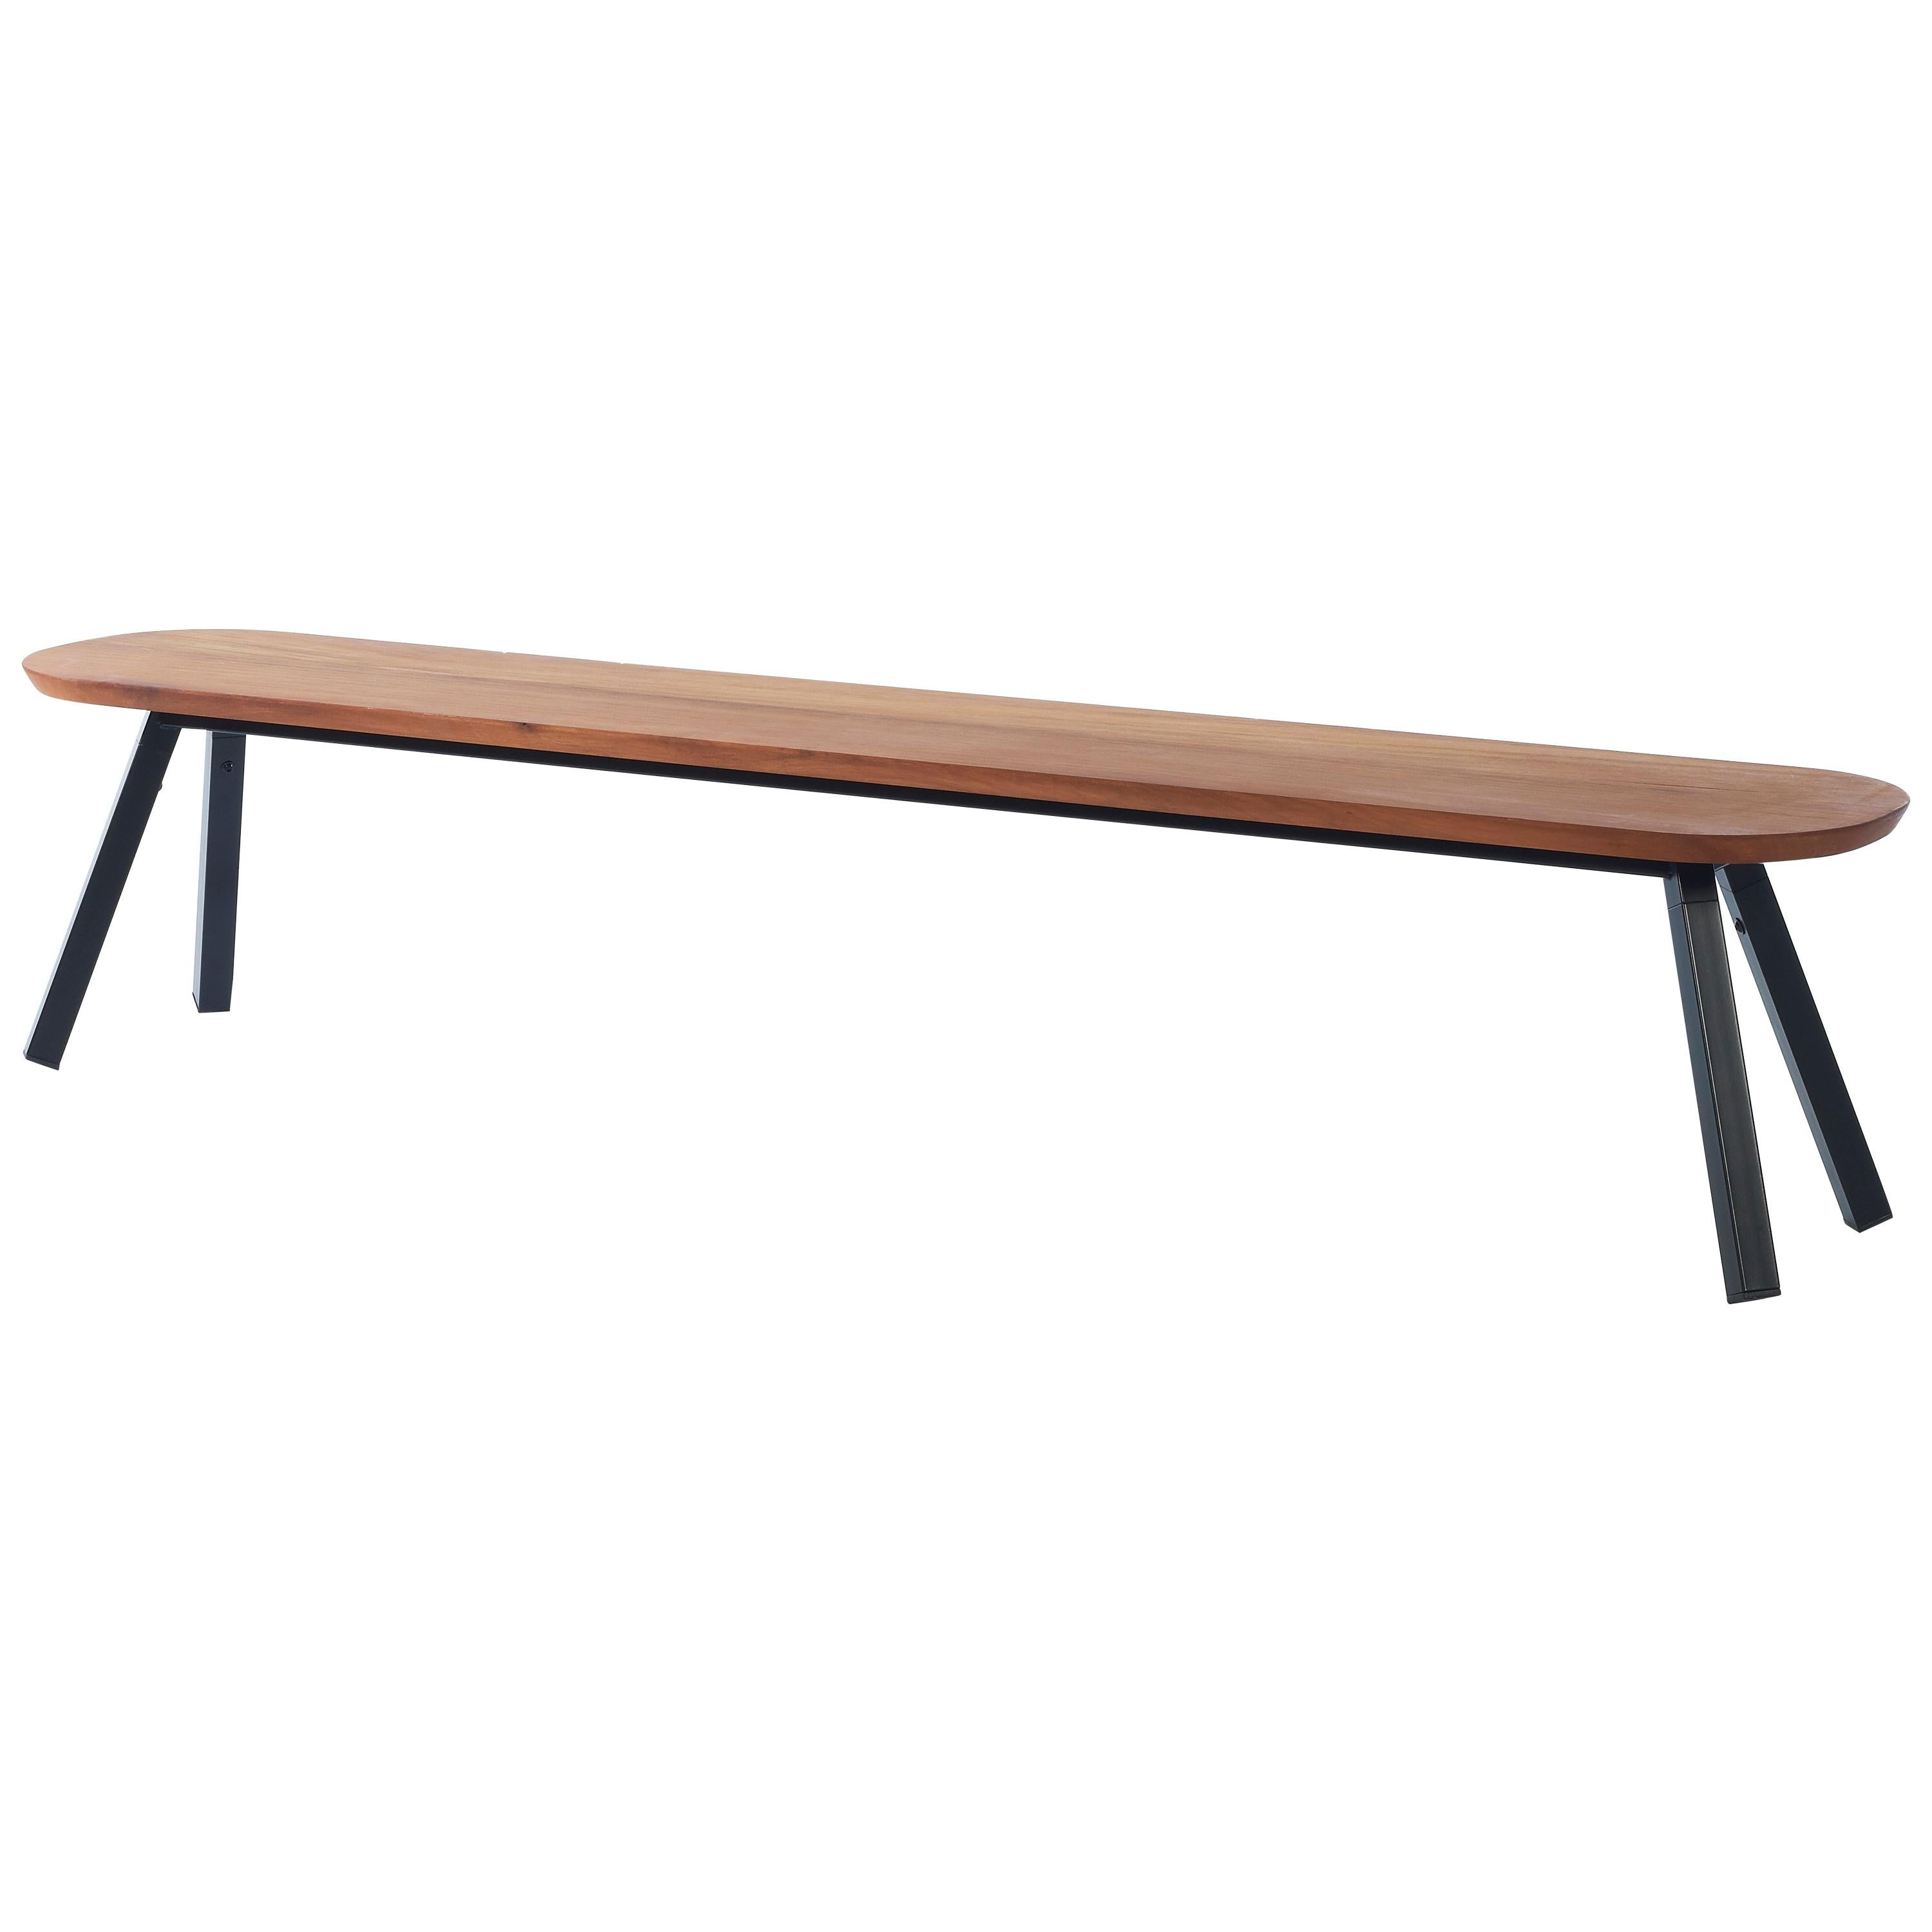 RS Barcelona You and Me 220 Bench in Iroko with Black Legs by A.P.O.